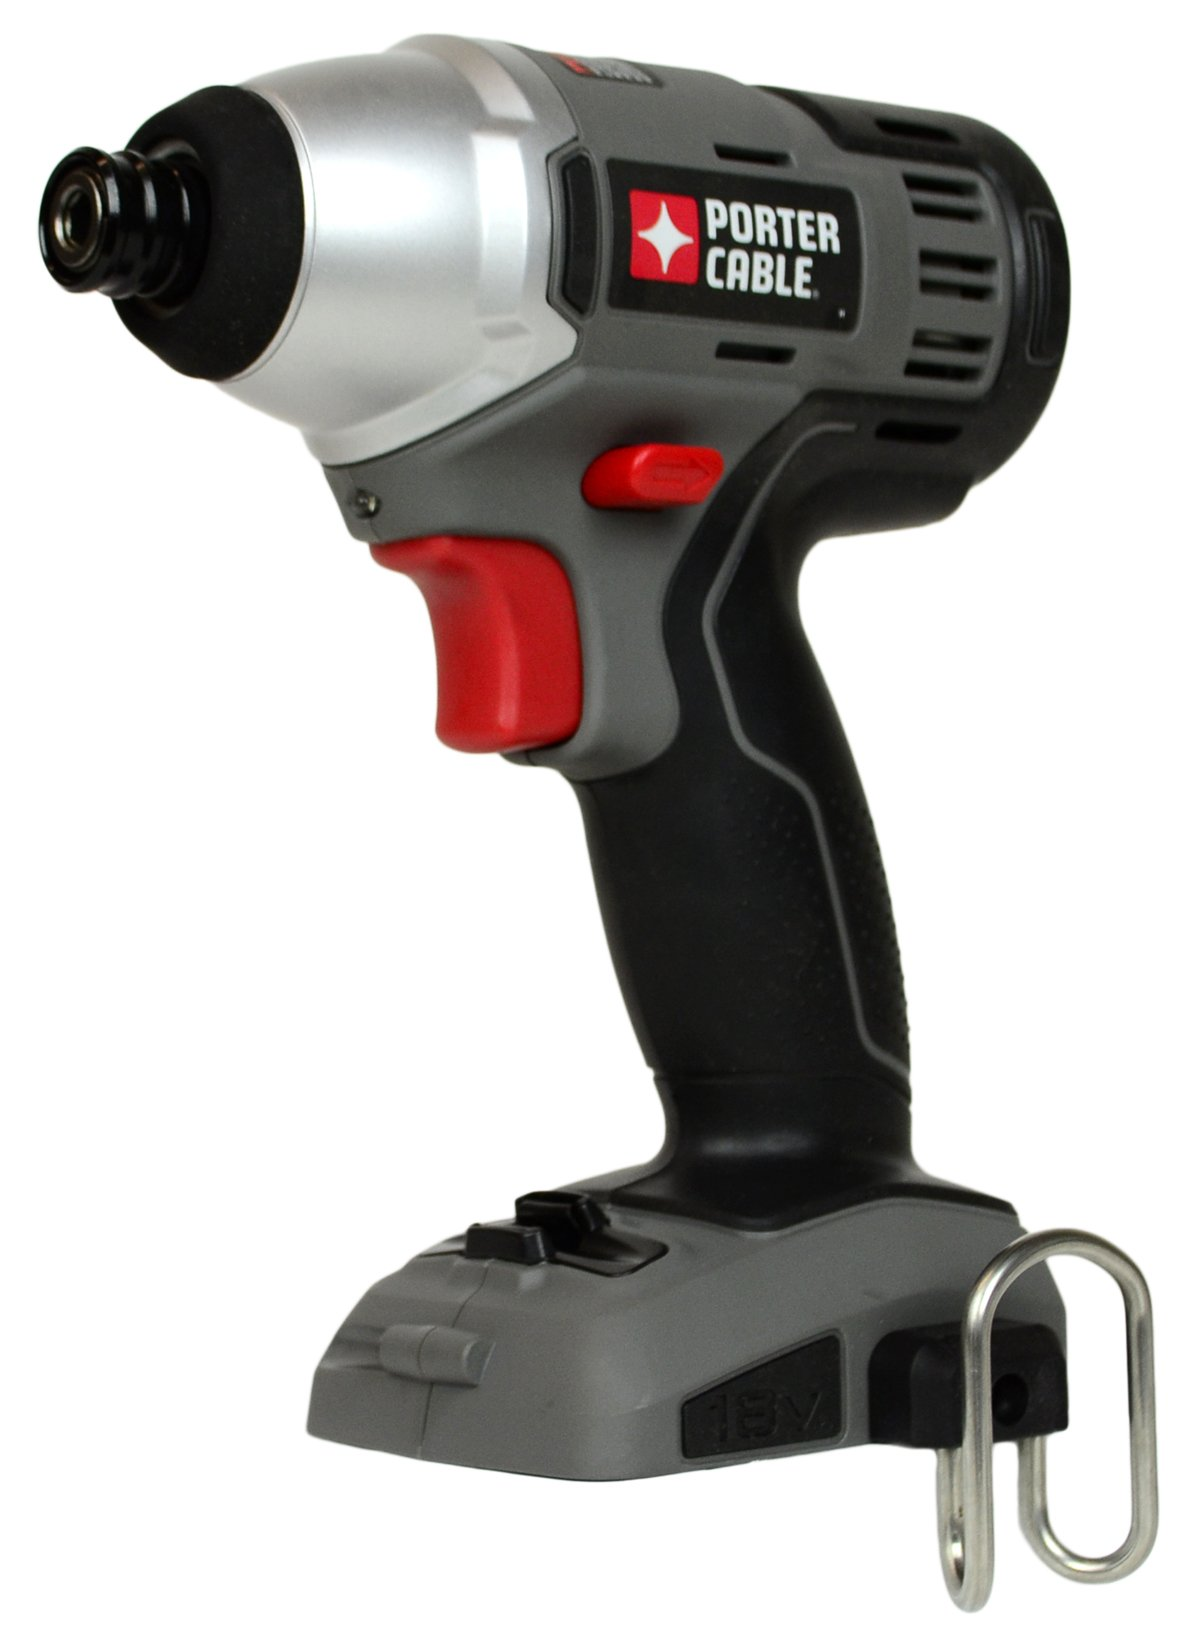 PORTER-CABLE Bare-Tool PC1801ID 18-Volt 1/4'' Hex Drive Cordless Impact Driver (Tool Only, No Battery)